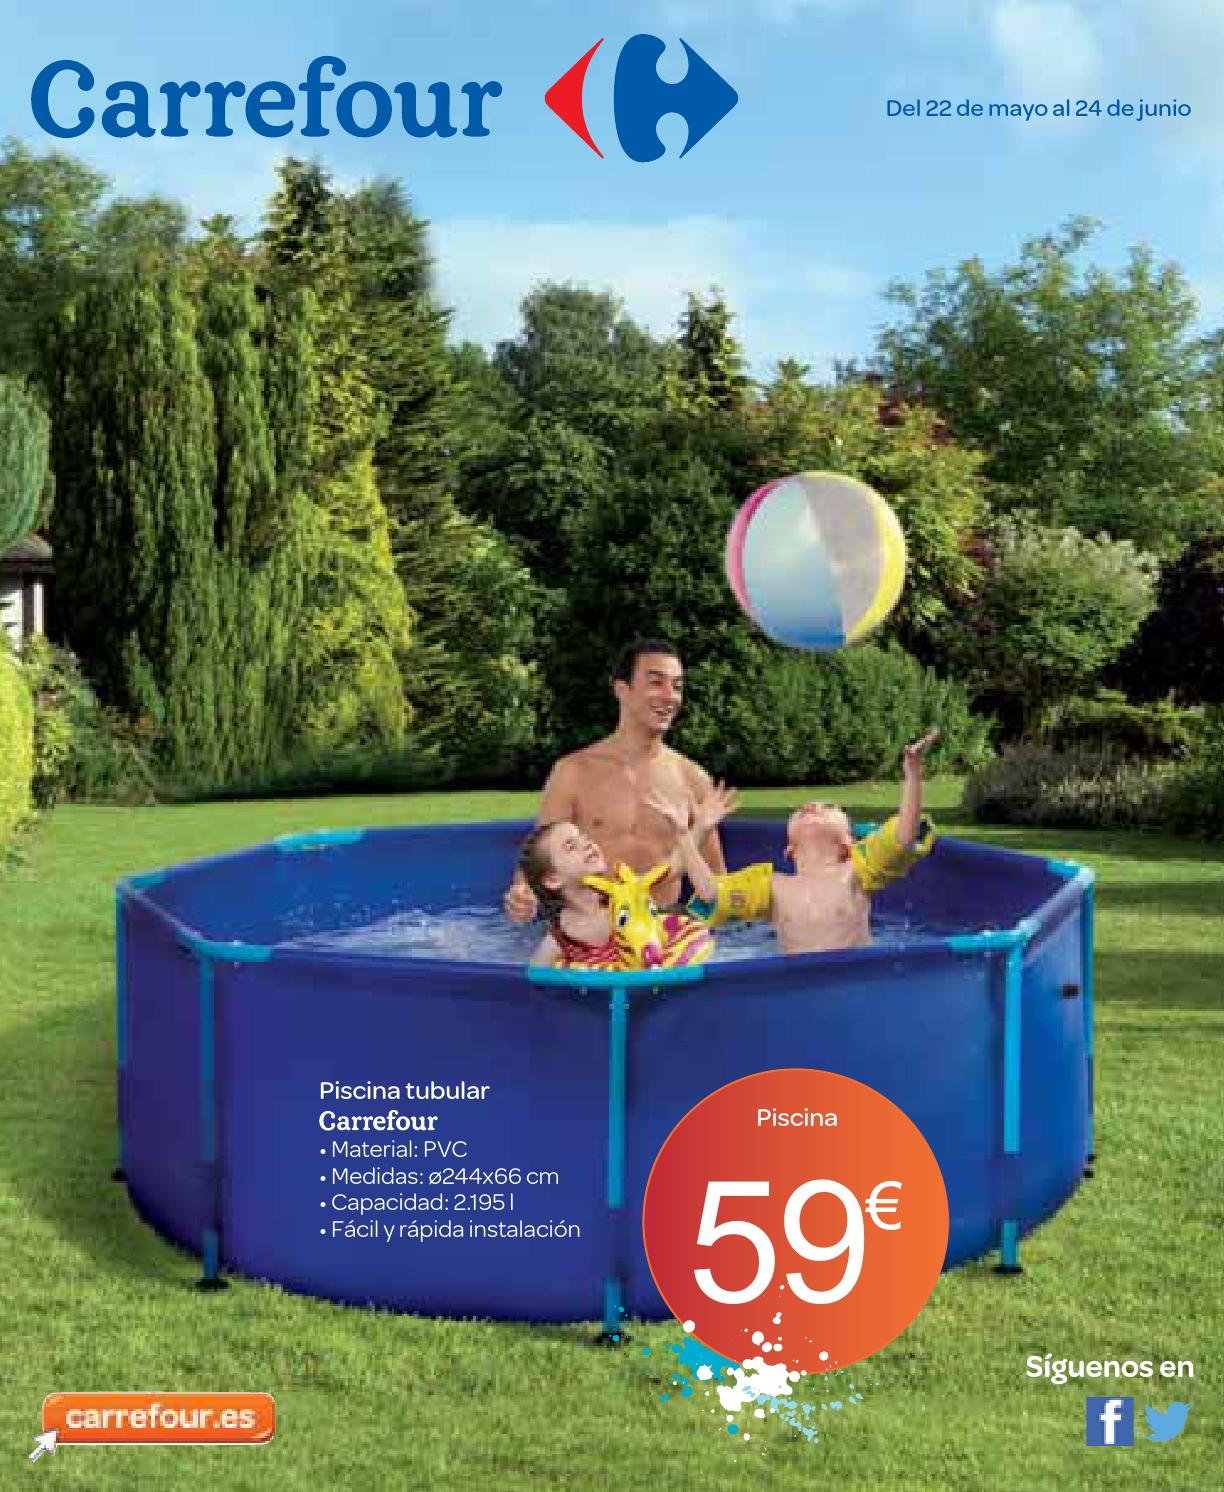 Piscina desmontable en carrefour for Piscinas hipercor catalogo